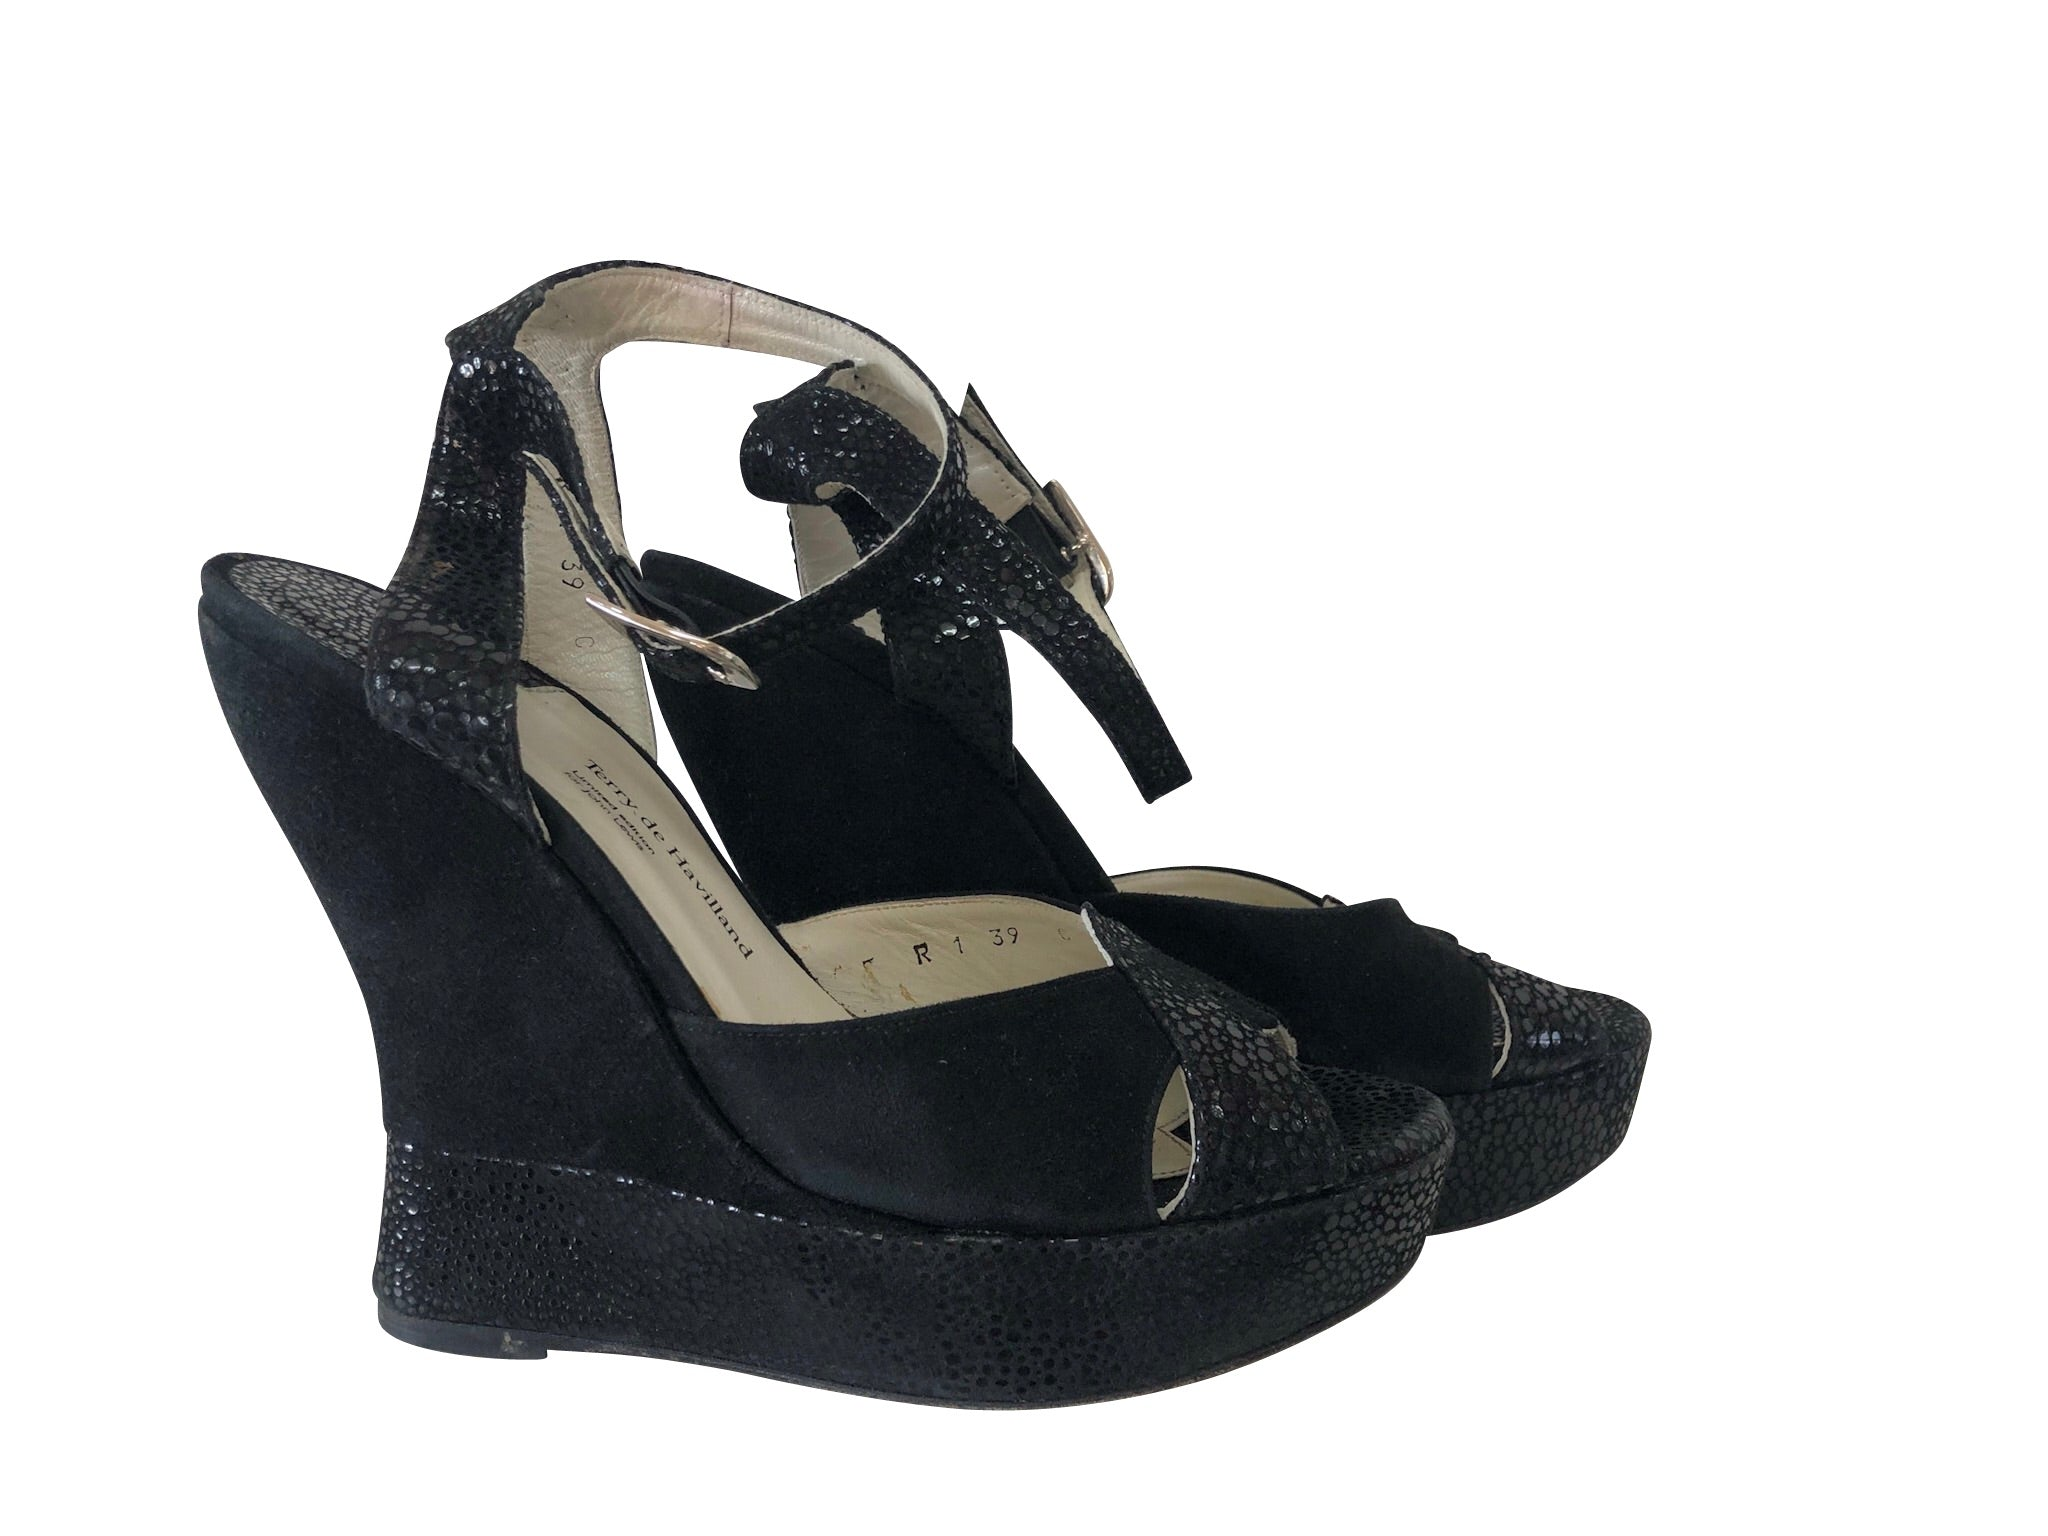 Terry de Havilland Wedges